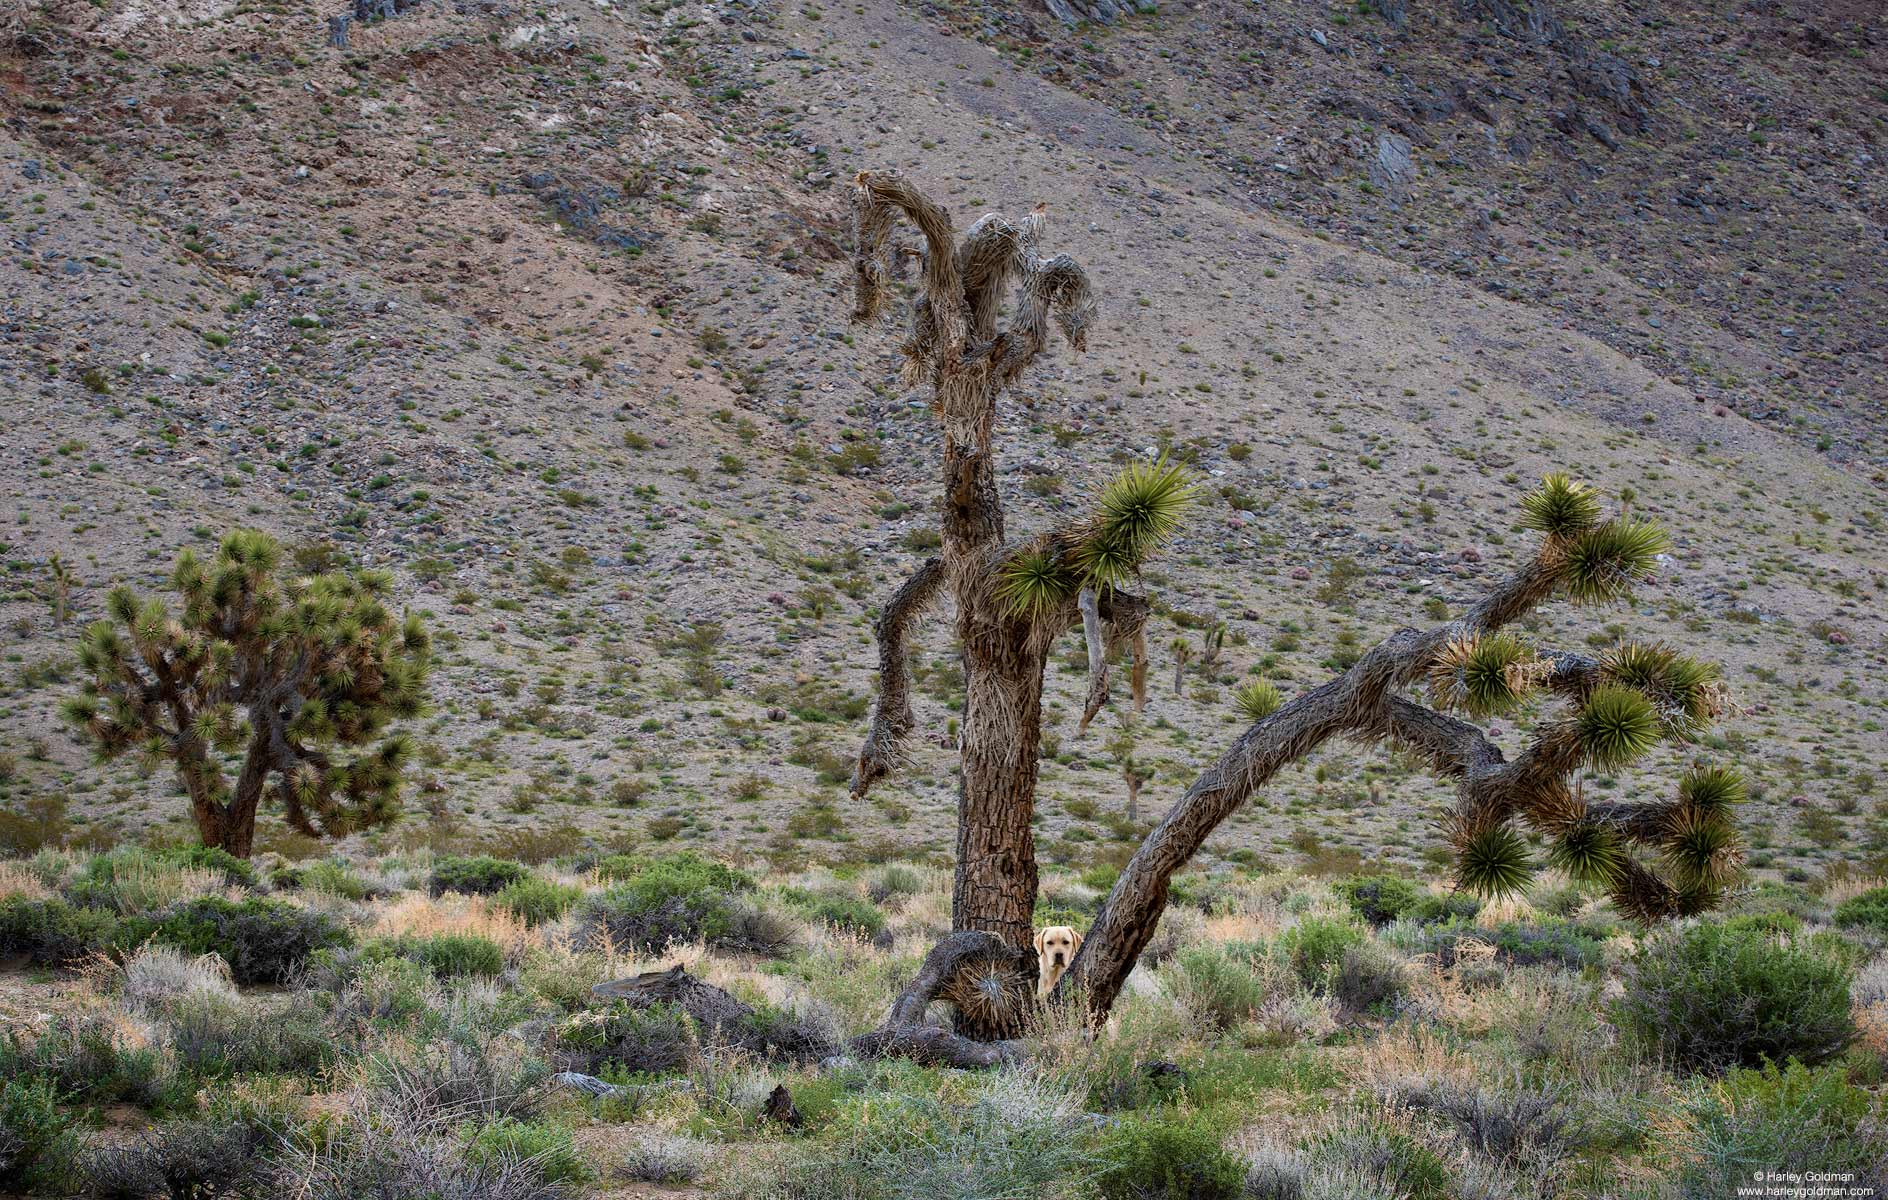 Tioga is peaking out from the joshua tree, just to make sure dad is close enough for her comfort.